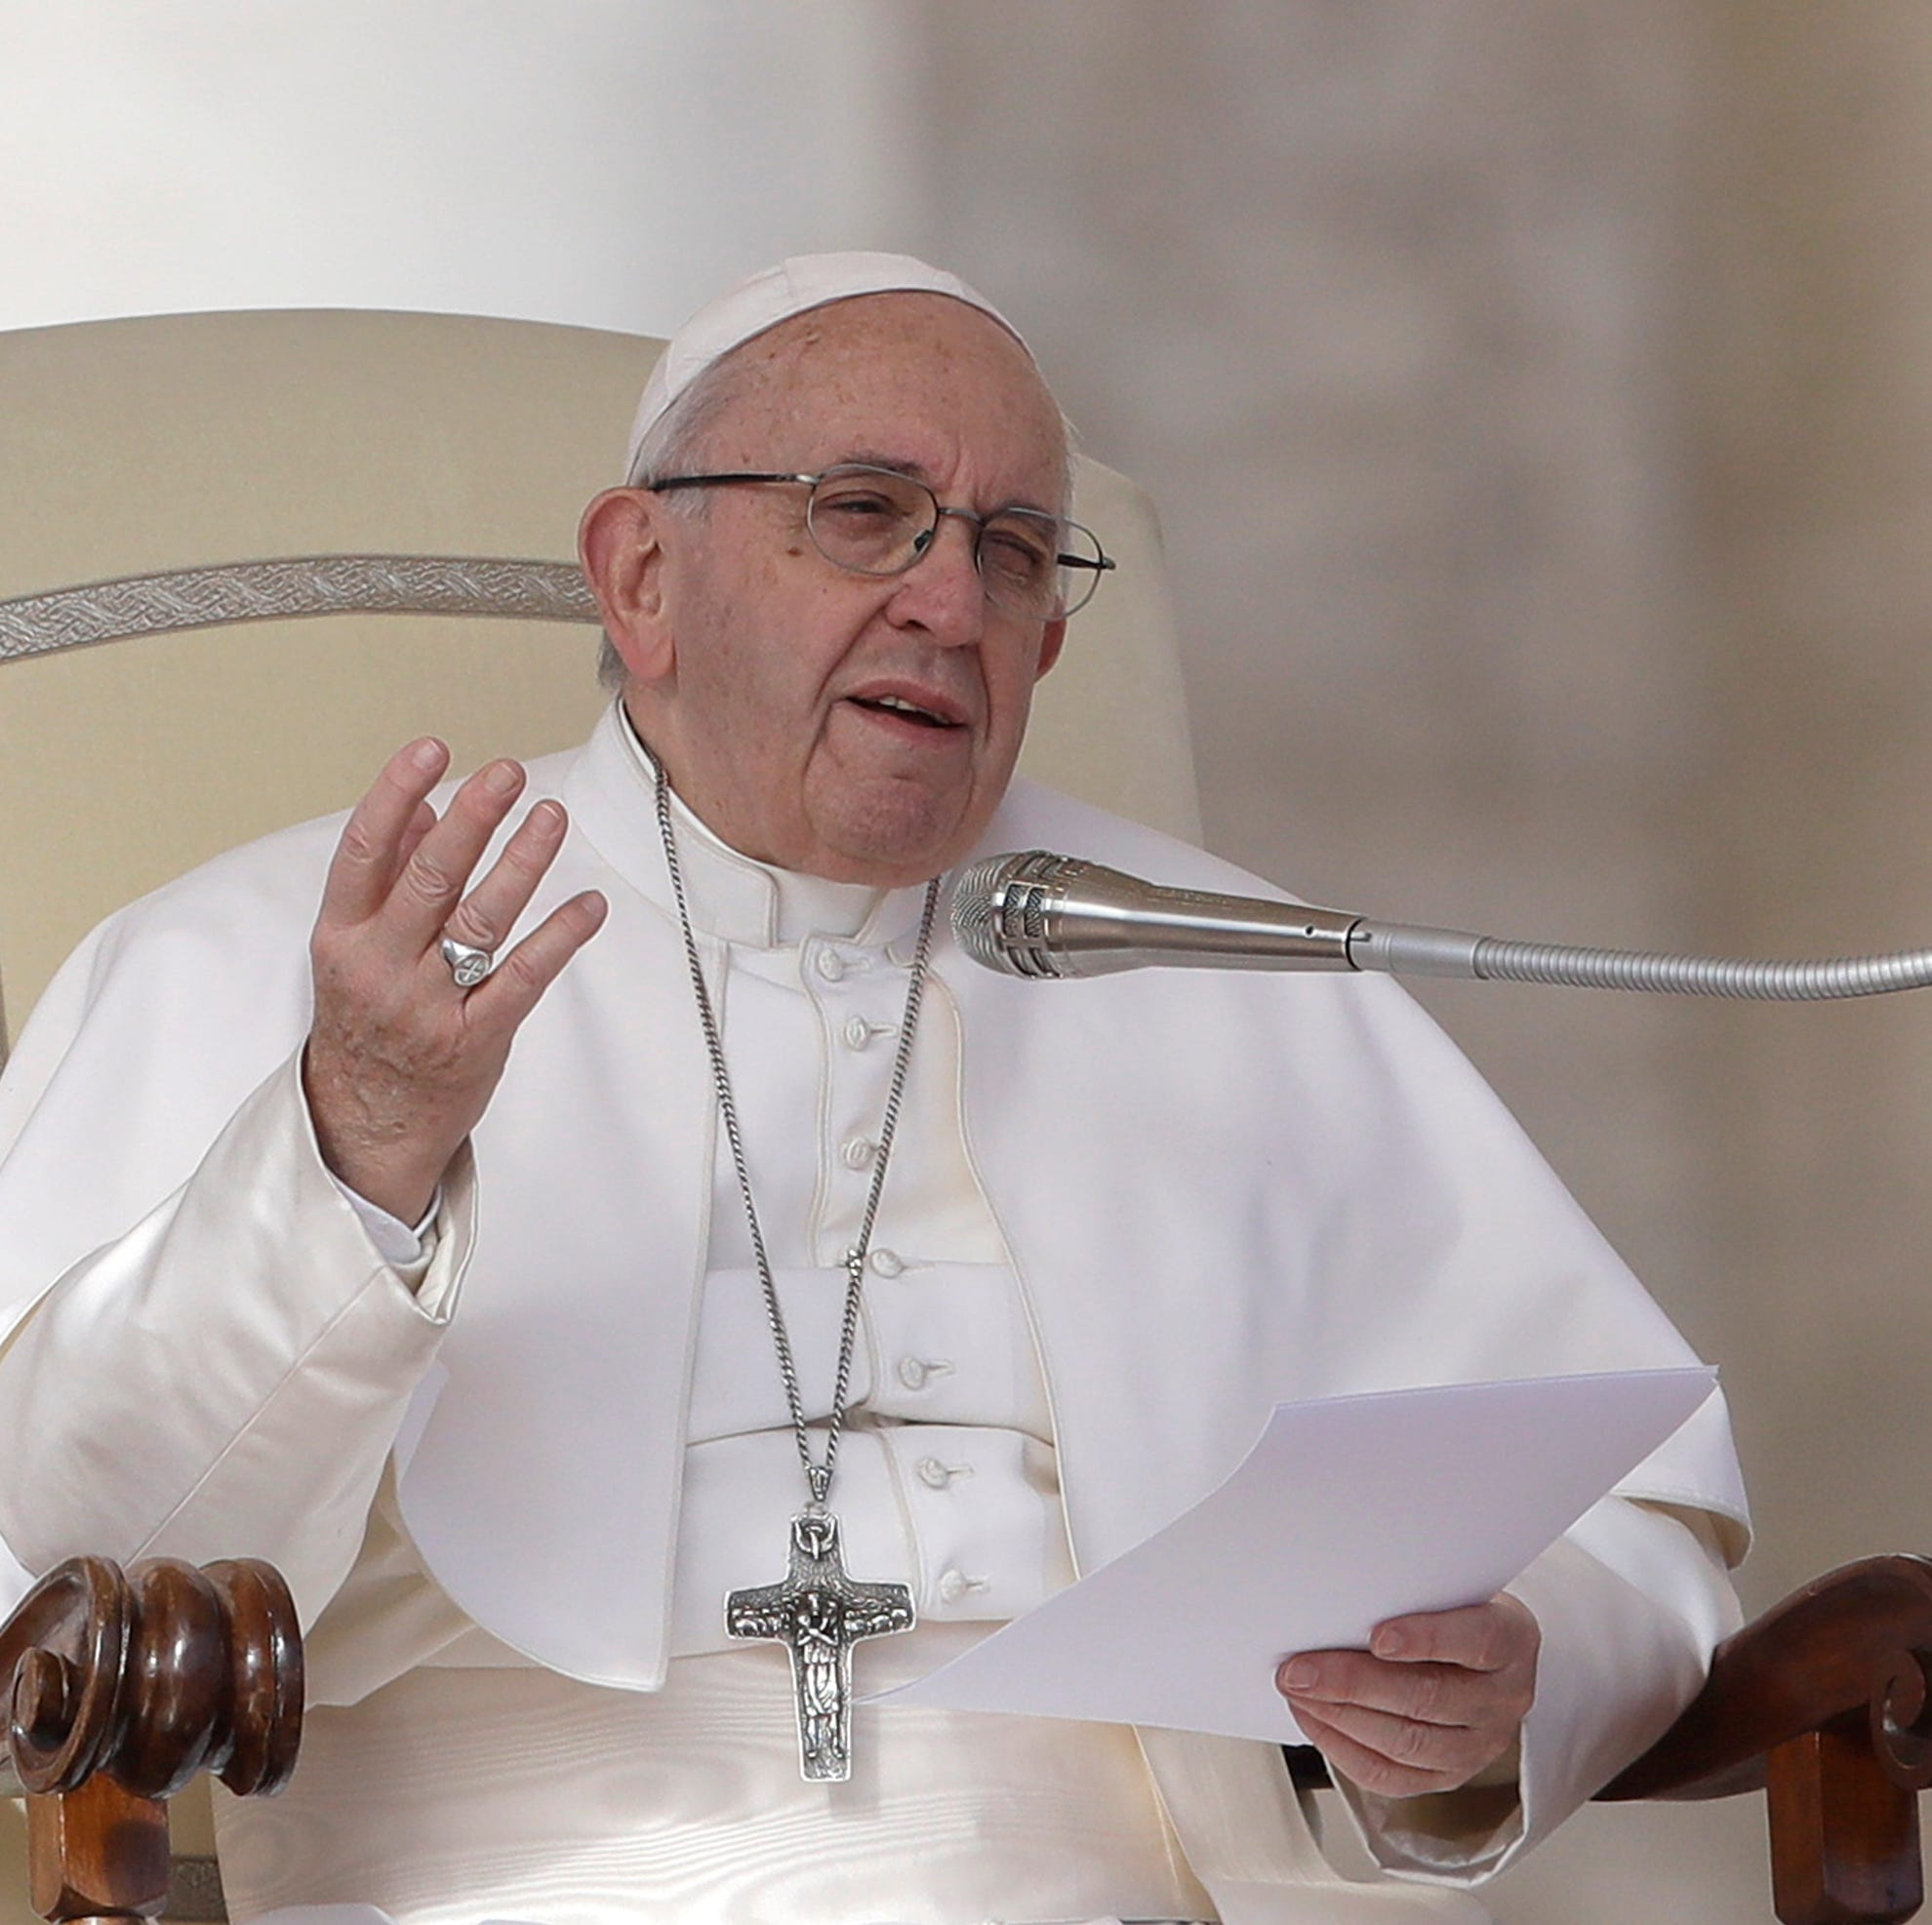 Pope Francis' sex abuse speech was a disgraceful display of excuses